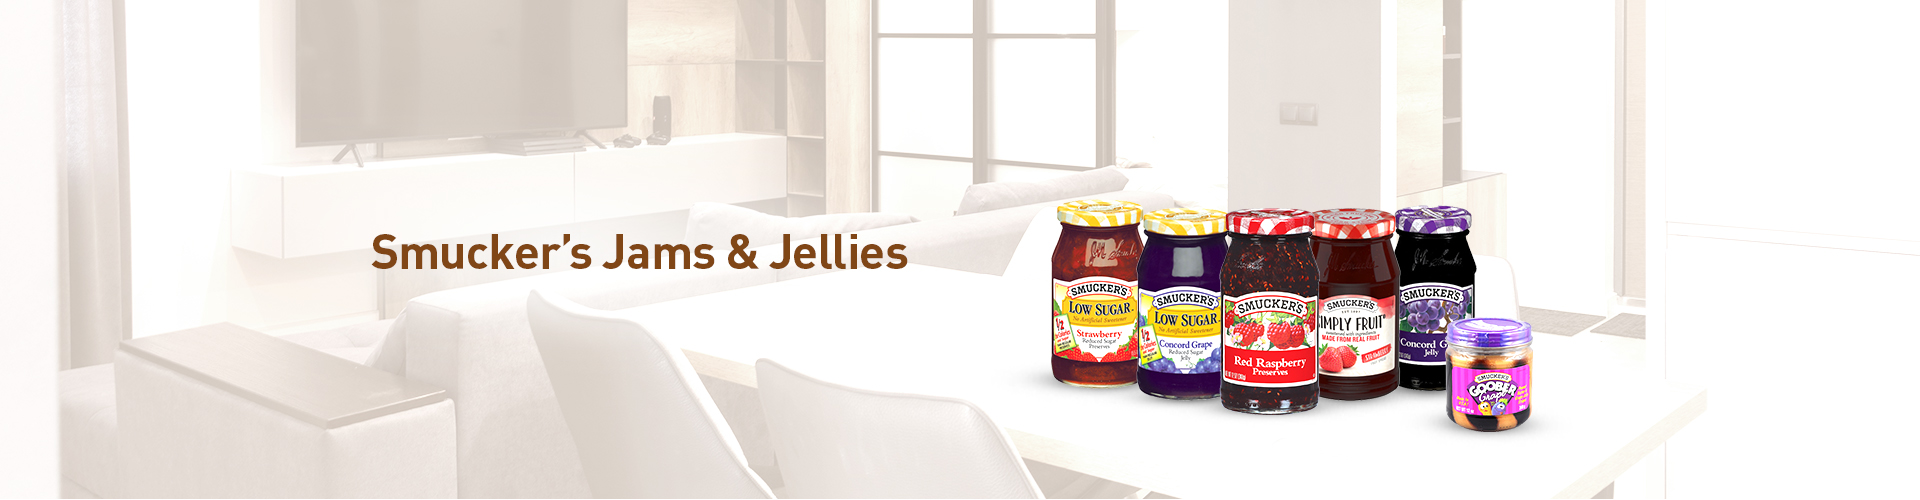 Smucker's Jams & Jellies